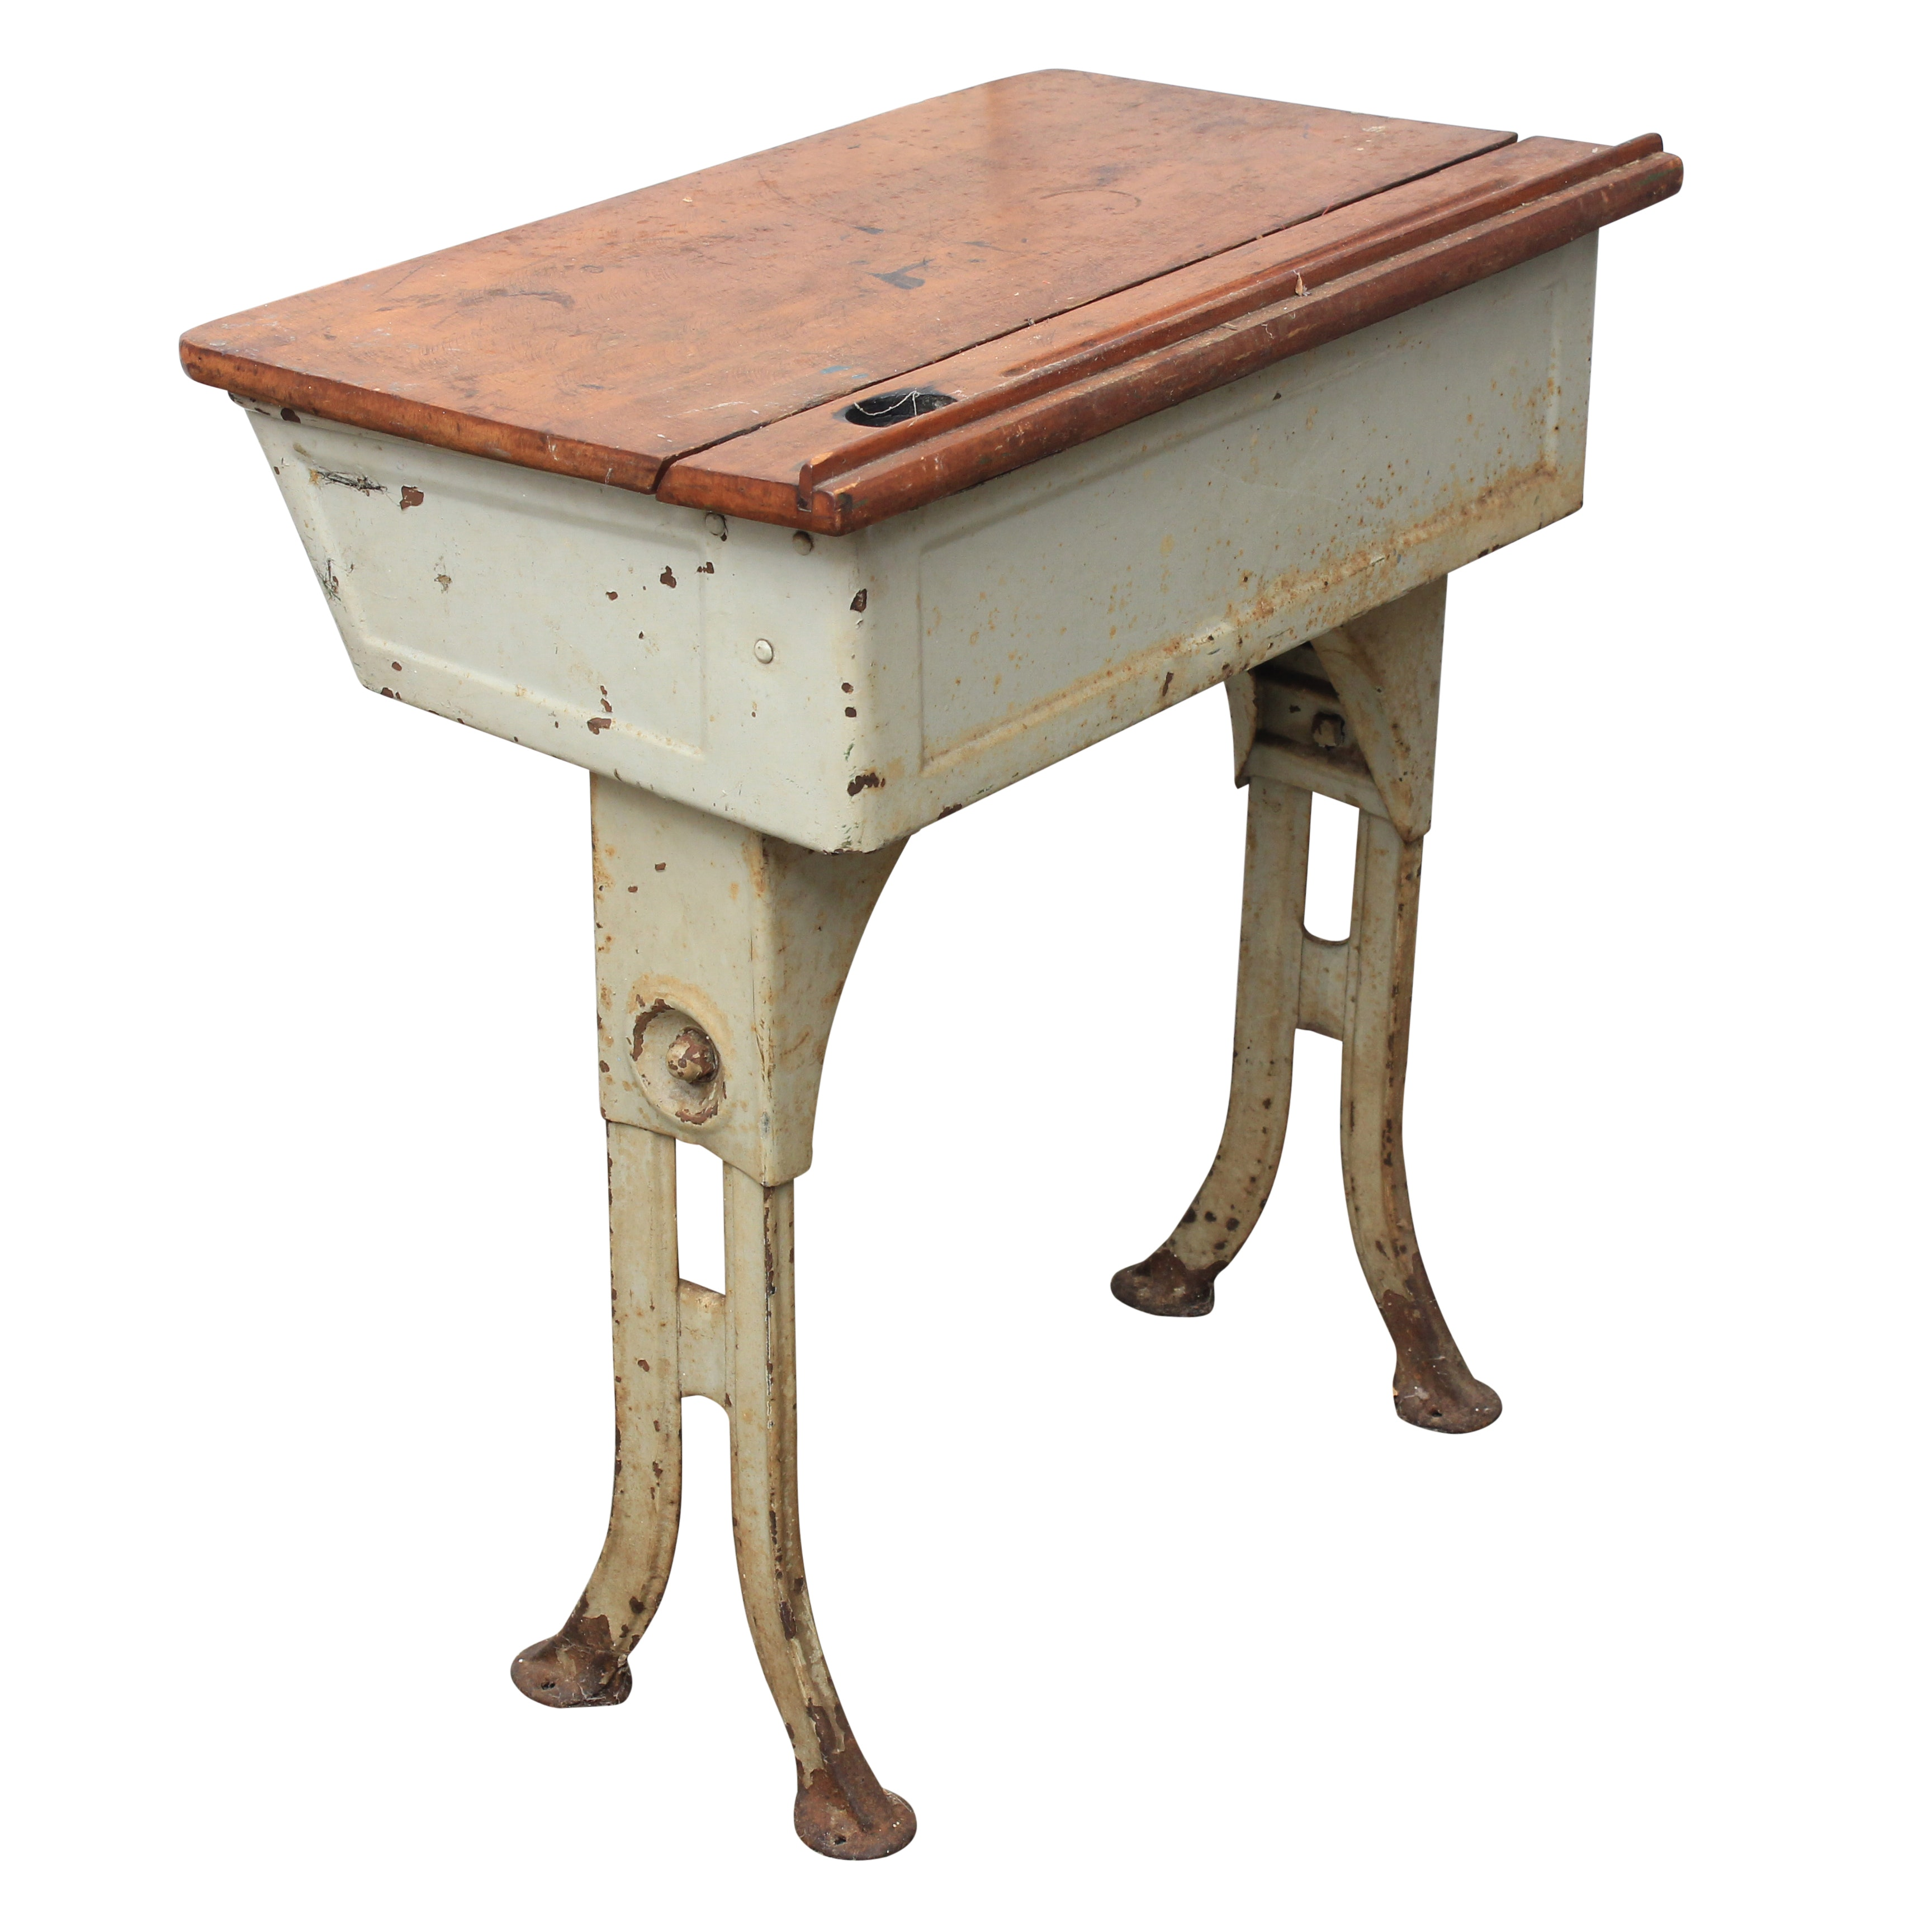 Vintage Painted Metal and Maple School Desk